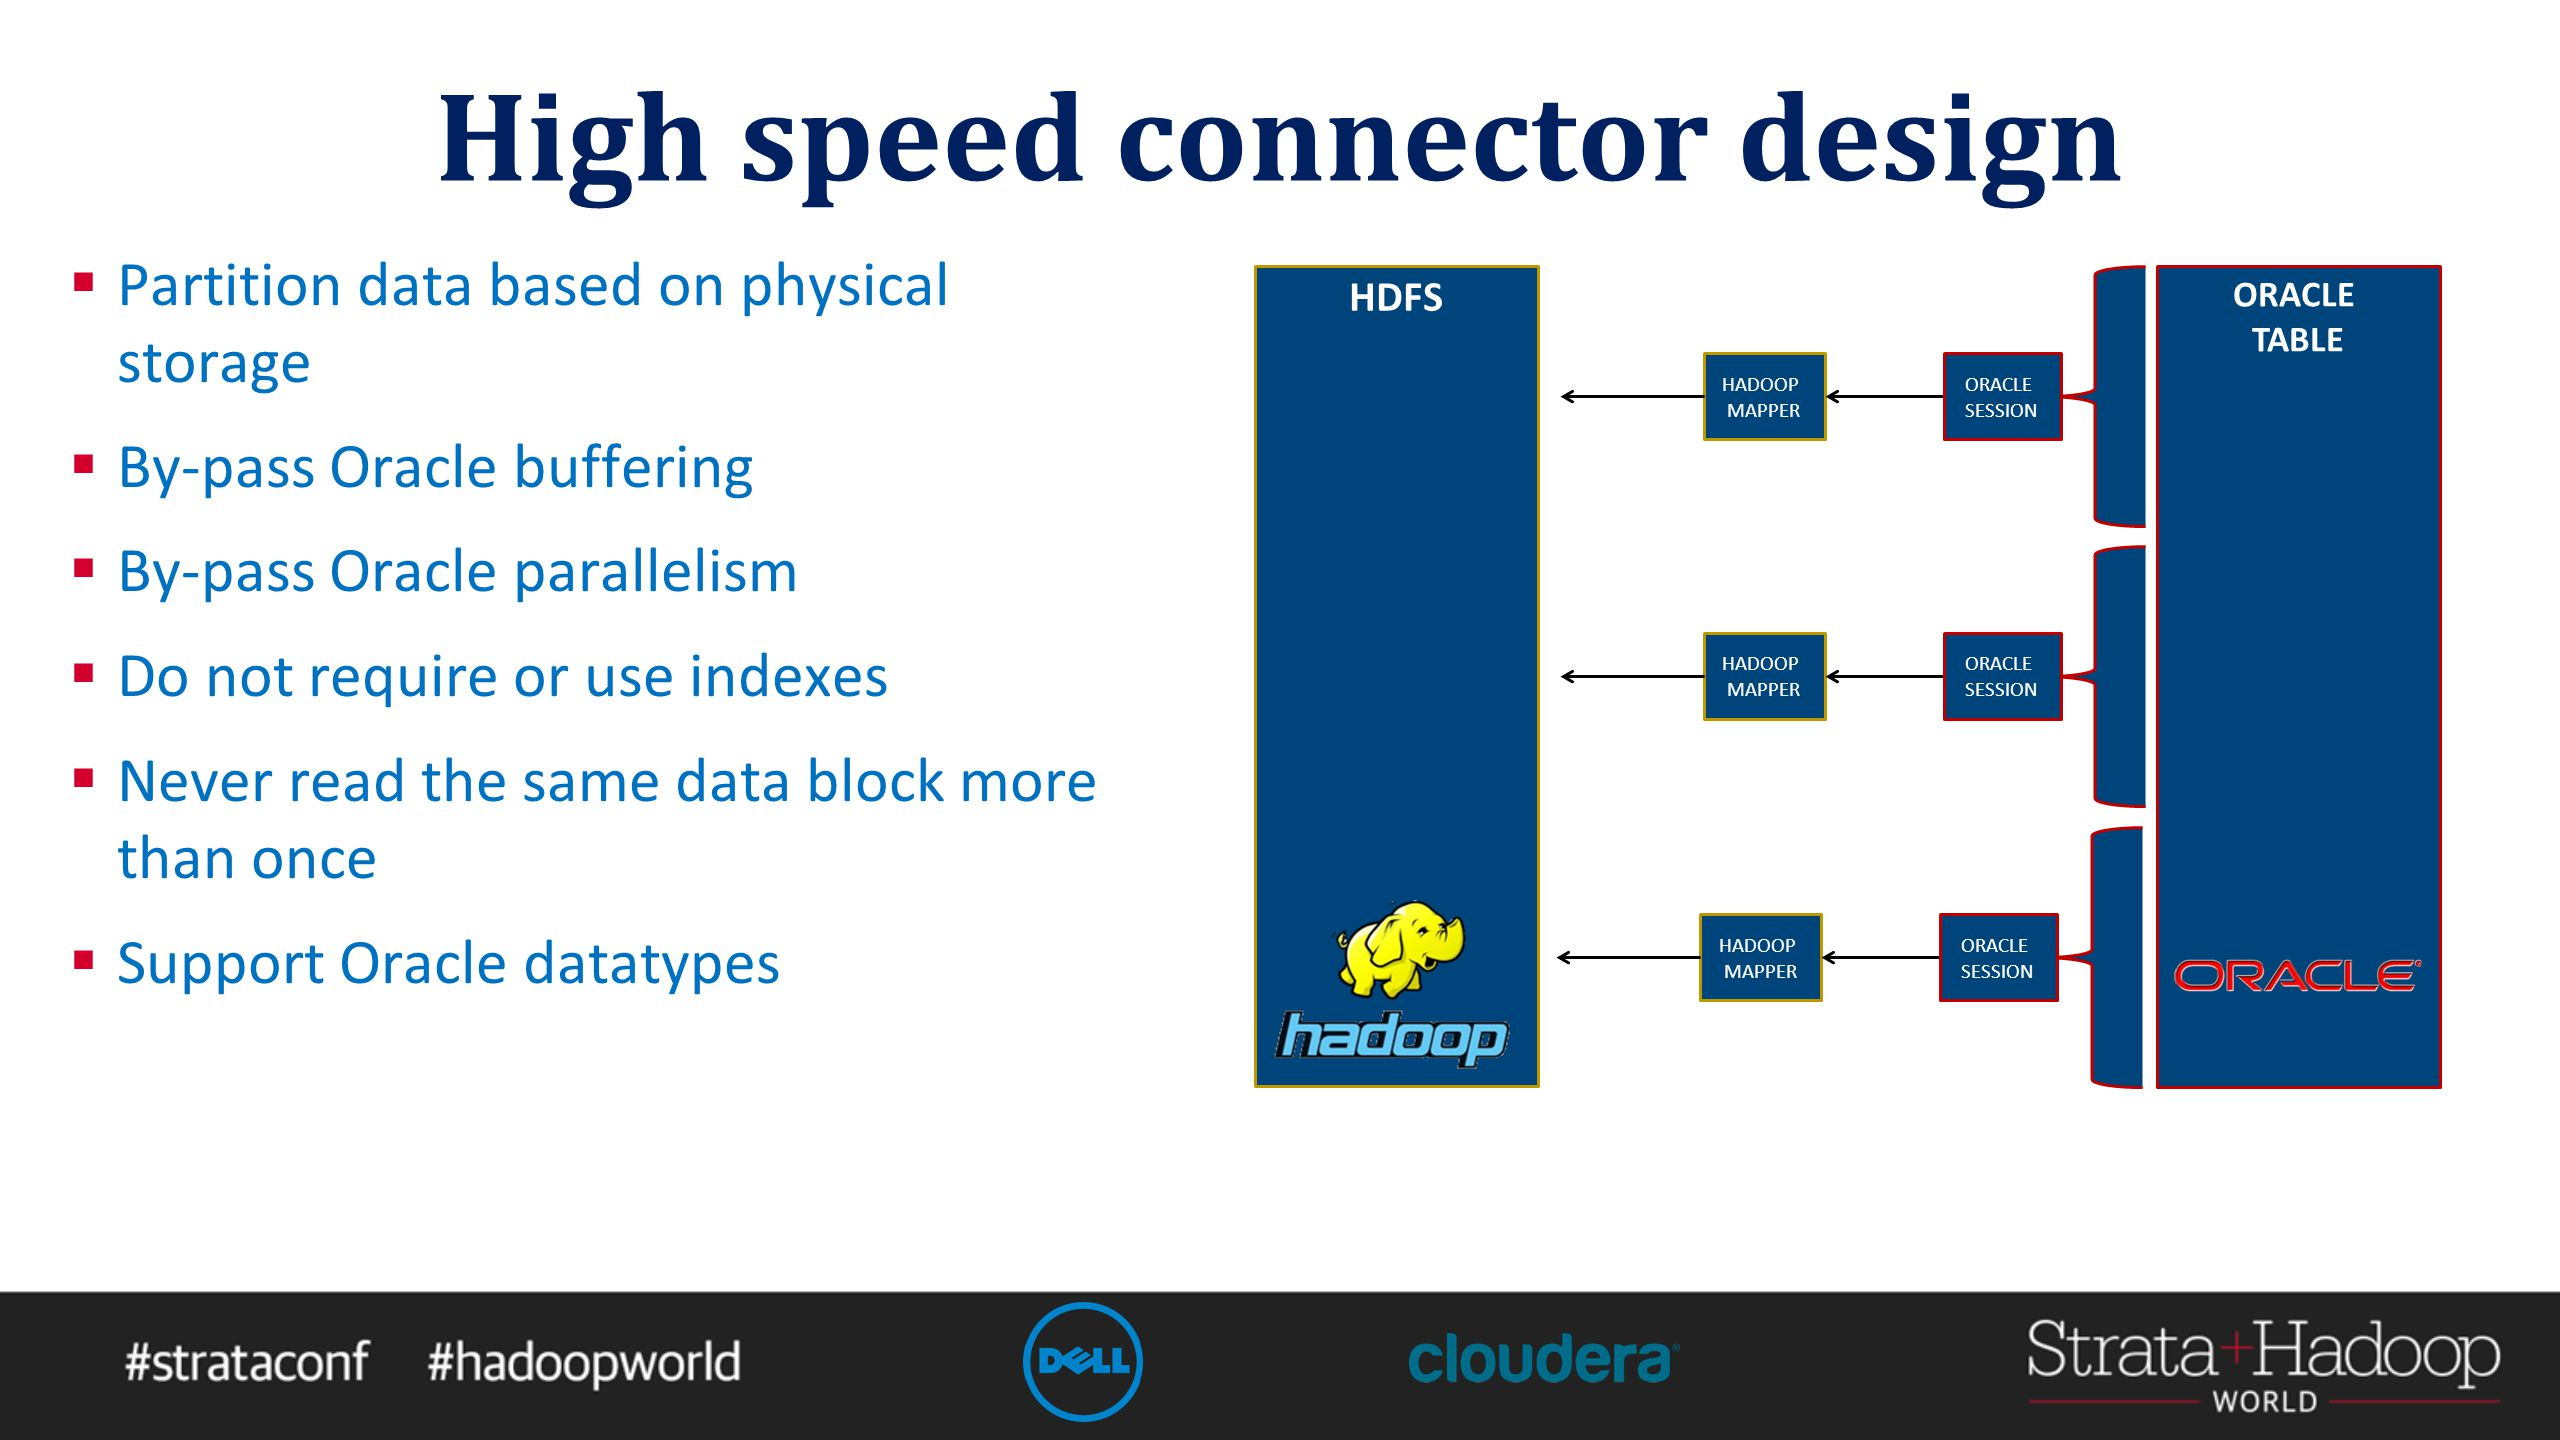 High speed connector design  Partition data based on physical storage  By-pass Oracle buffering  By-pass Oracle parallelism  Do not require or use indexes  Never read the same data block more than once  Support Oracle datatypes ORACLE TABLE HDFS HADOOP MAPPER ORACLE SESSION HADOOP MAPPER ORACLE SESSION HADOOP MAPPER ORACLE SESSION